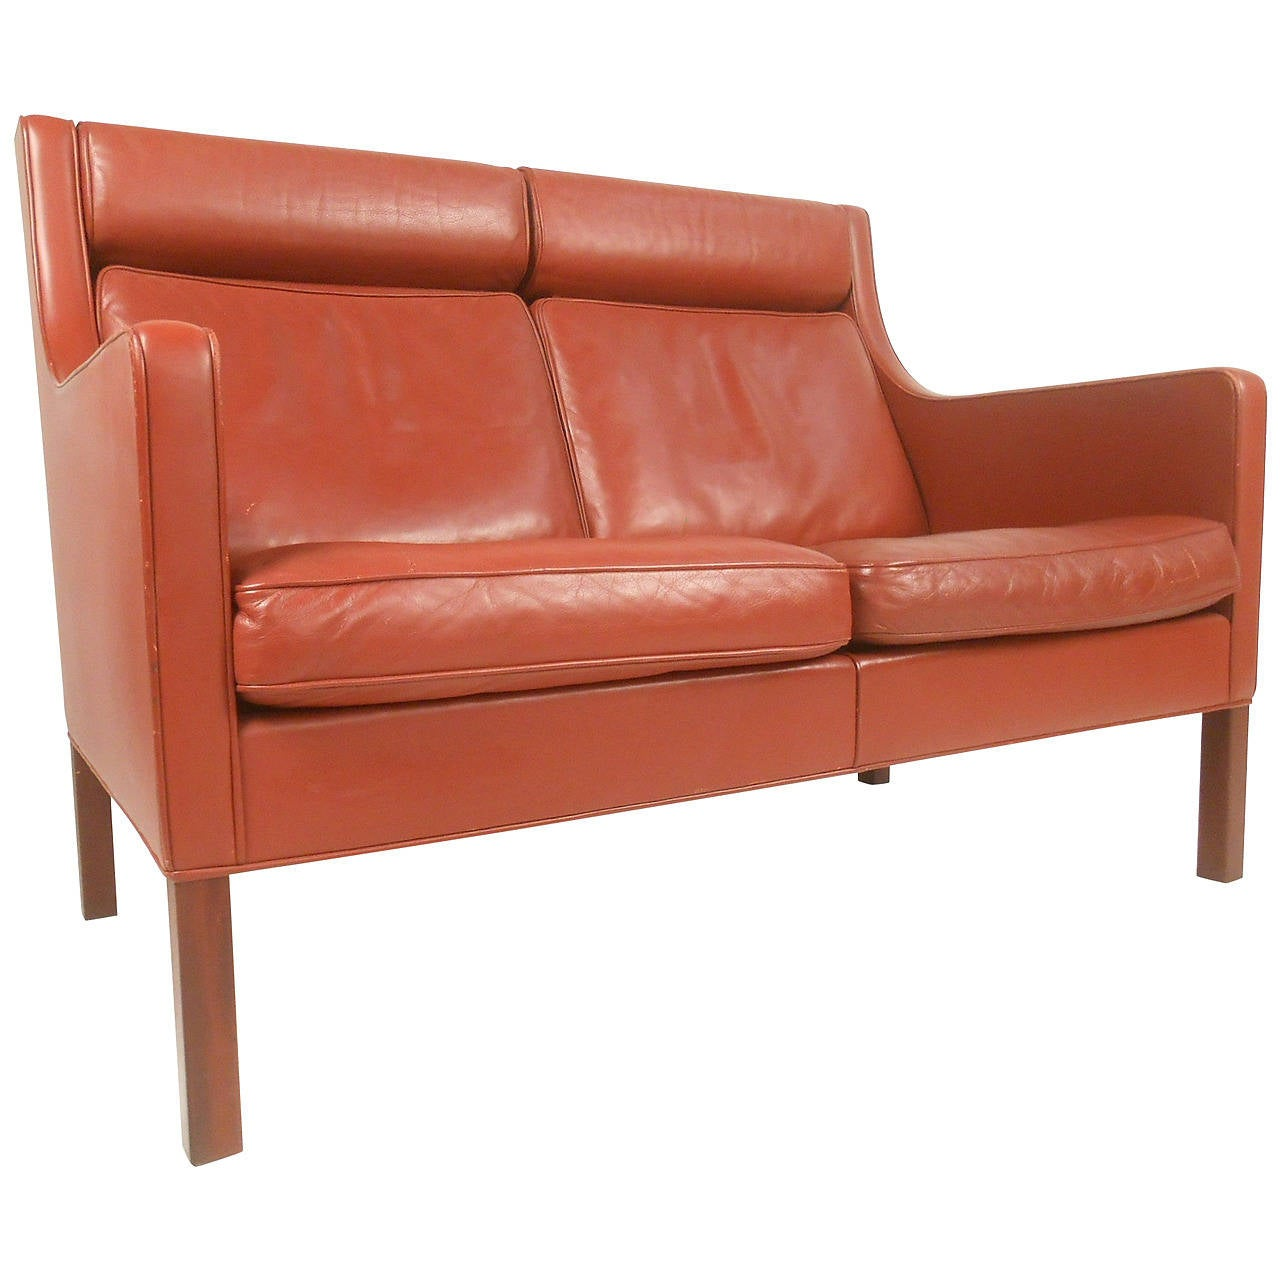 and sofa century cheap modern sofas danish retro inside mid loveseat